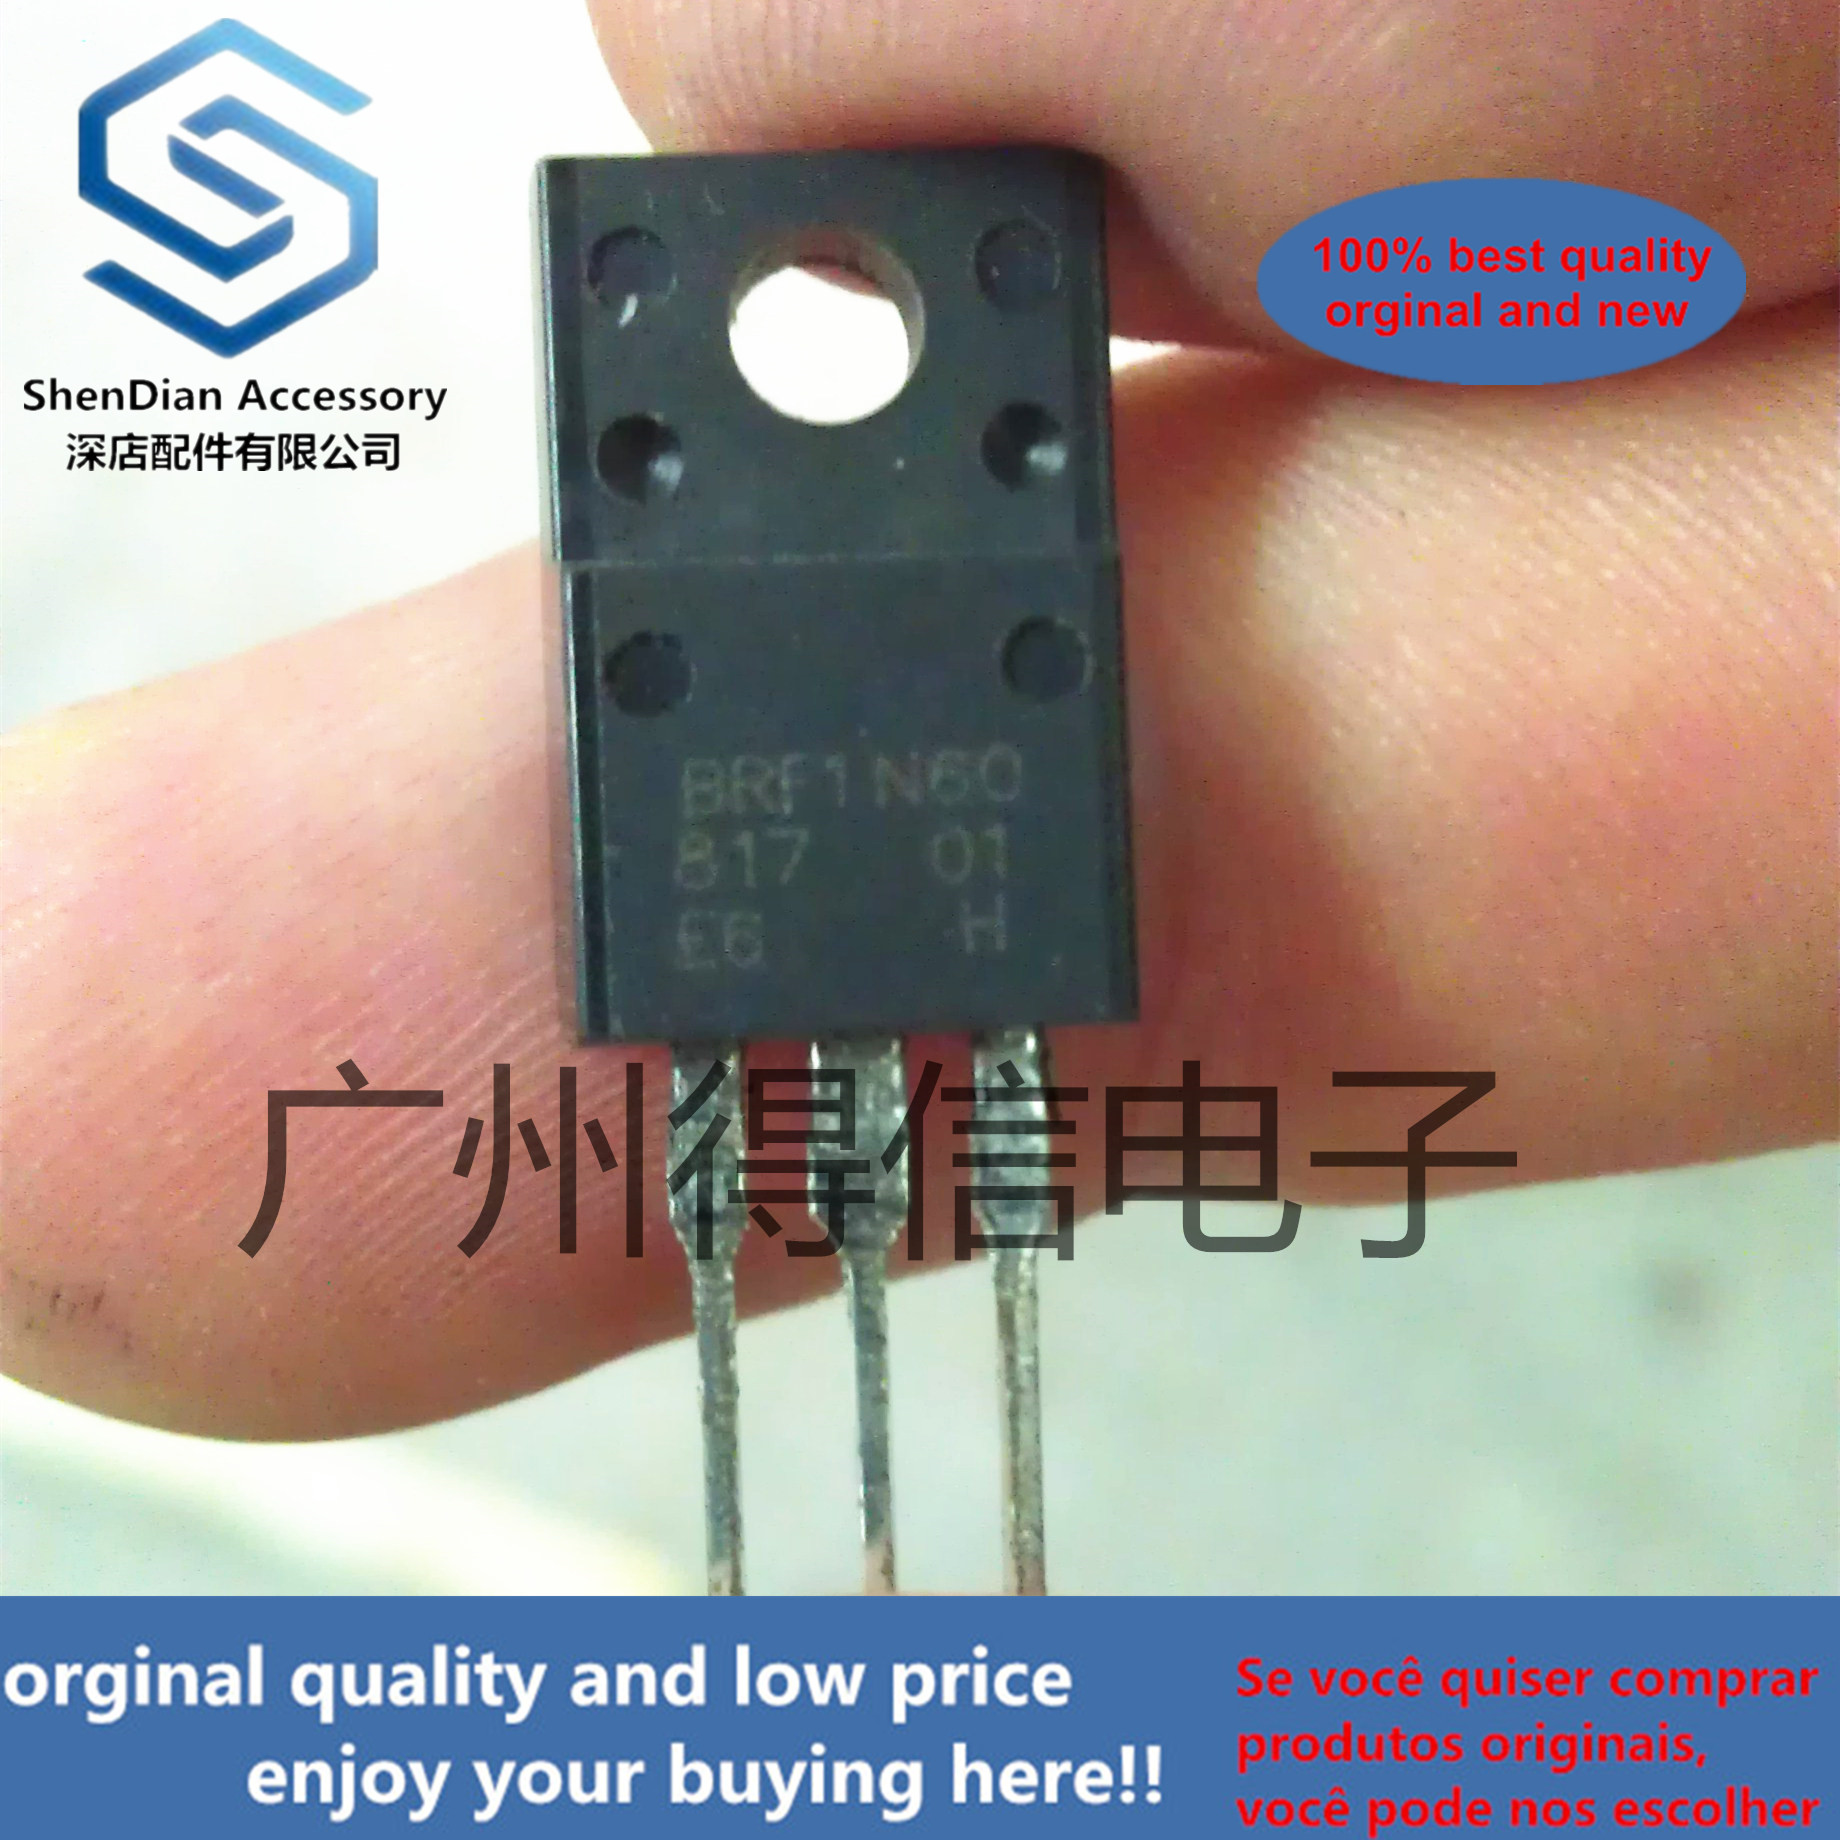 10pcs 100% Orginal New BRF1N60 1N60 MOS TO-220F N-CHANNEL MOSFET In A TO-220F Plastic Package Real Photo